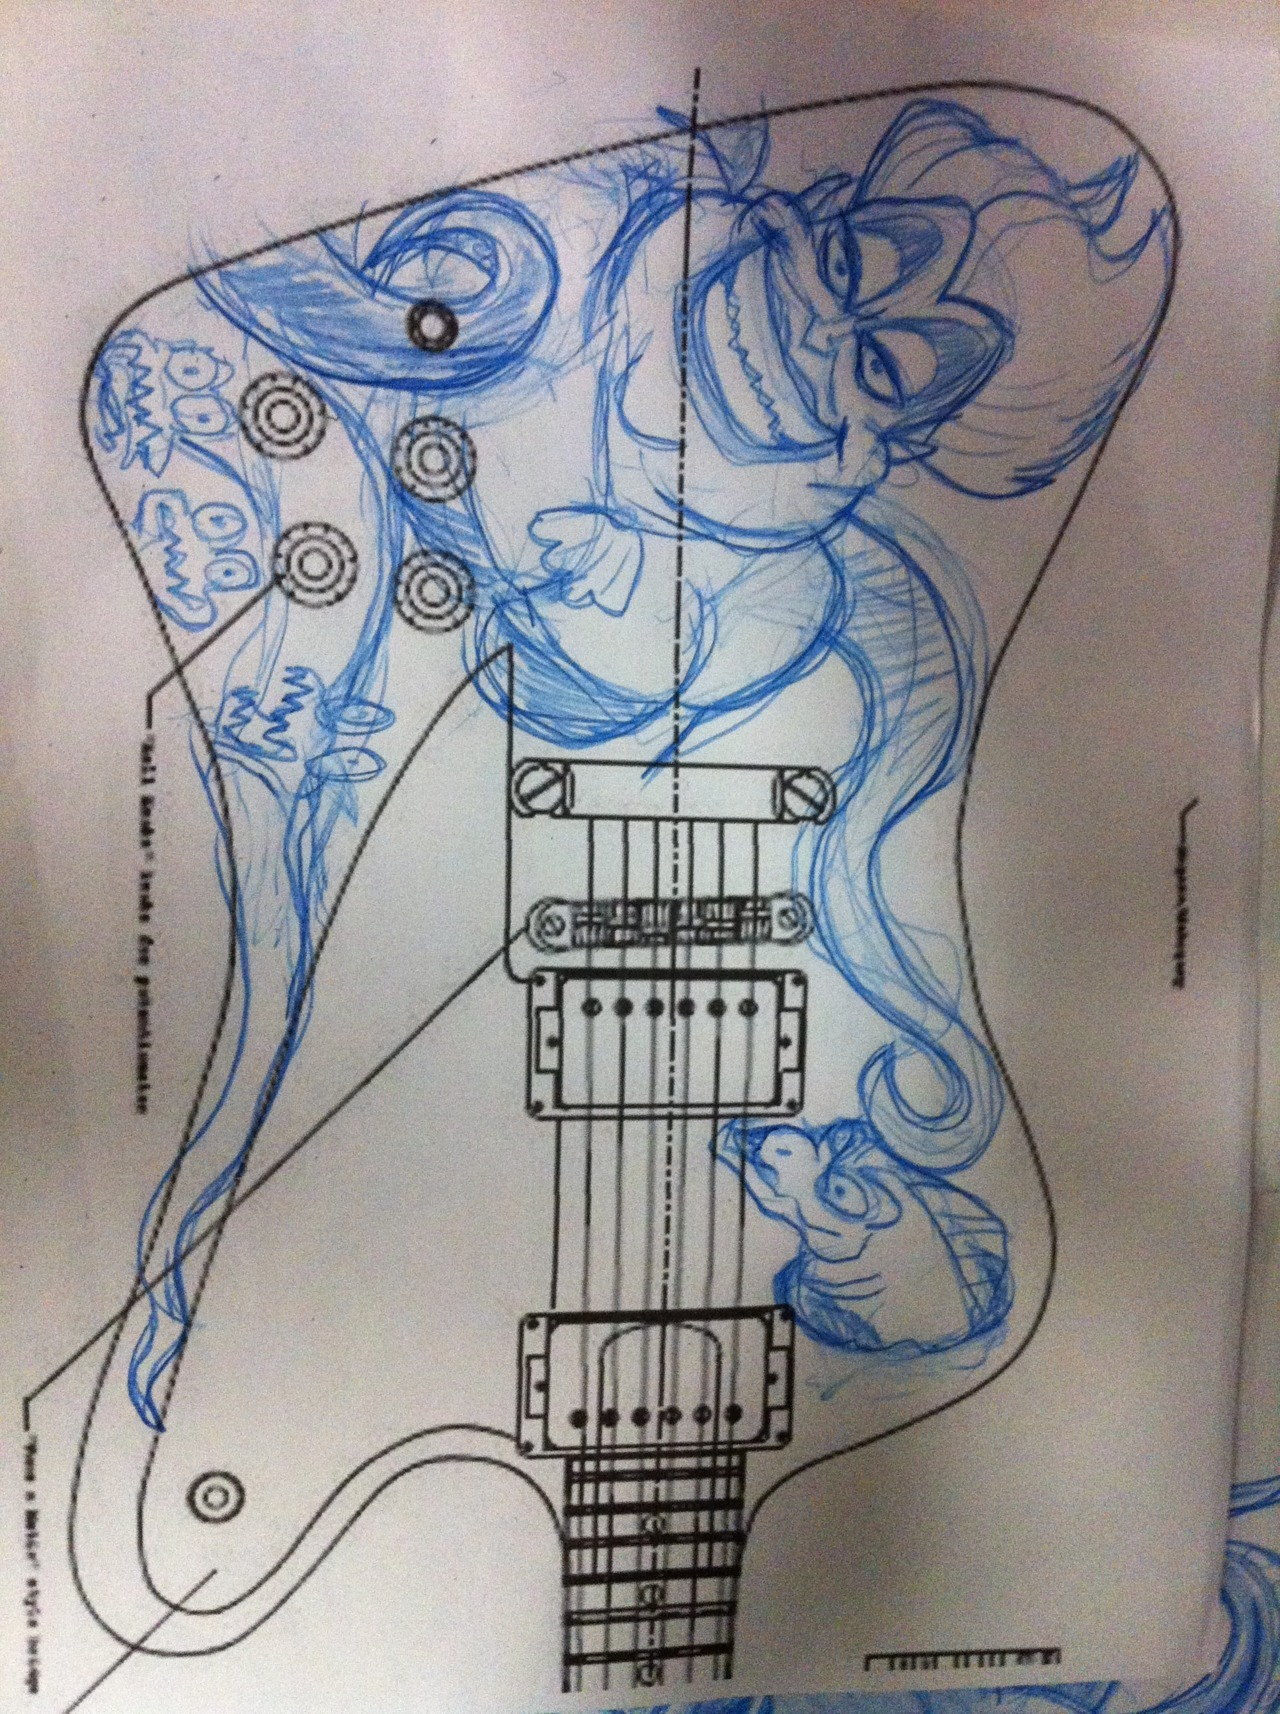 The art rough draft for the firebird!